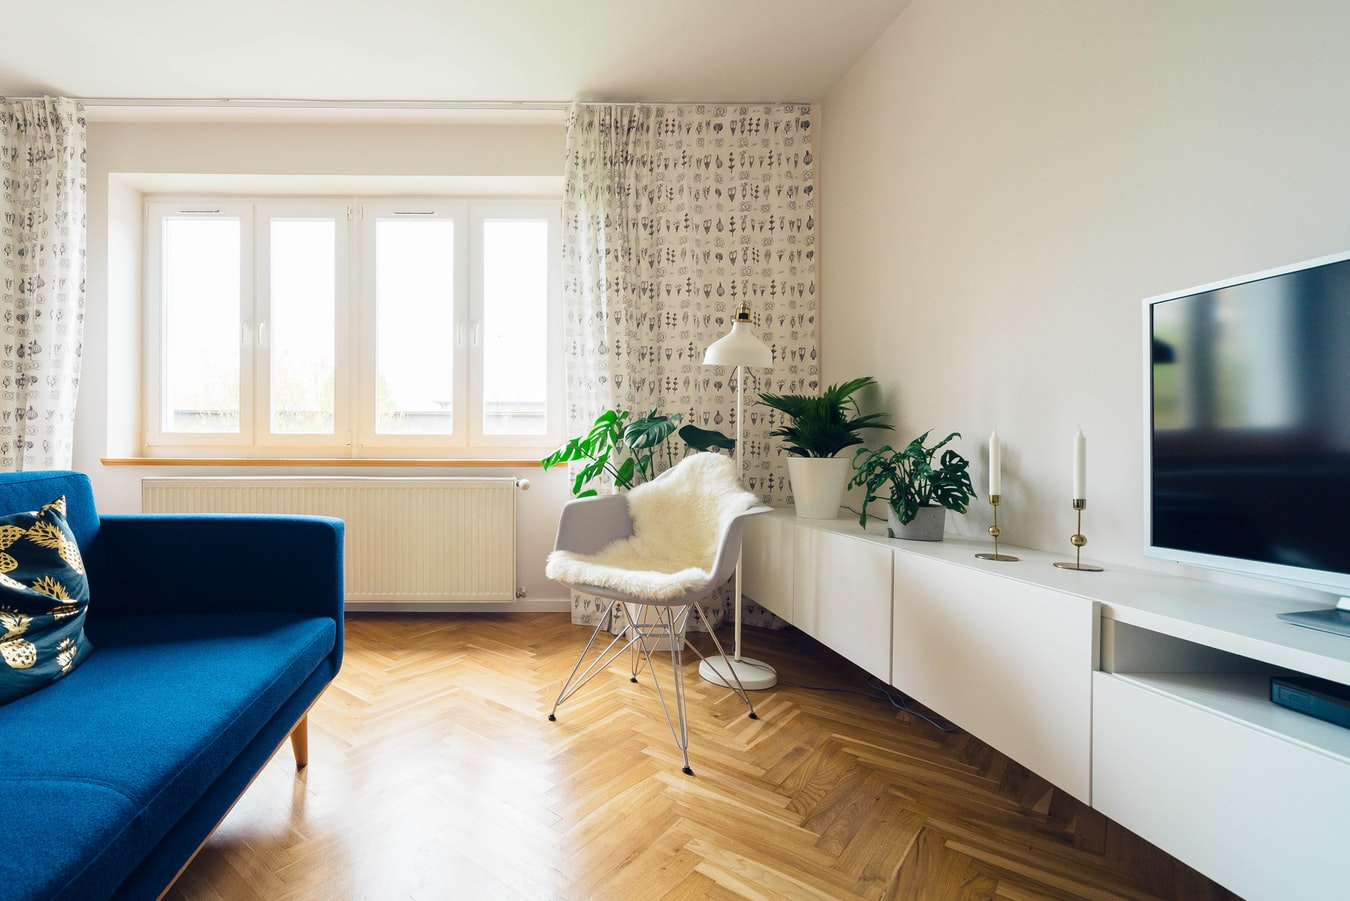 A small apartment with a blue sofa and big windows